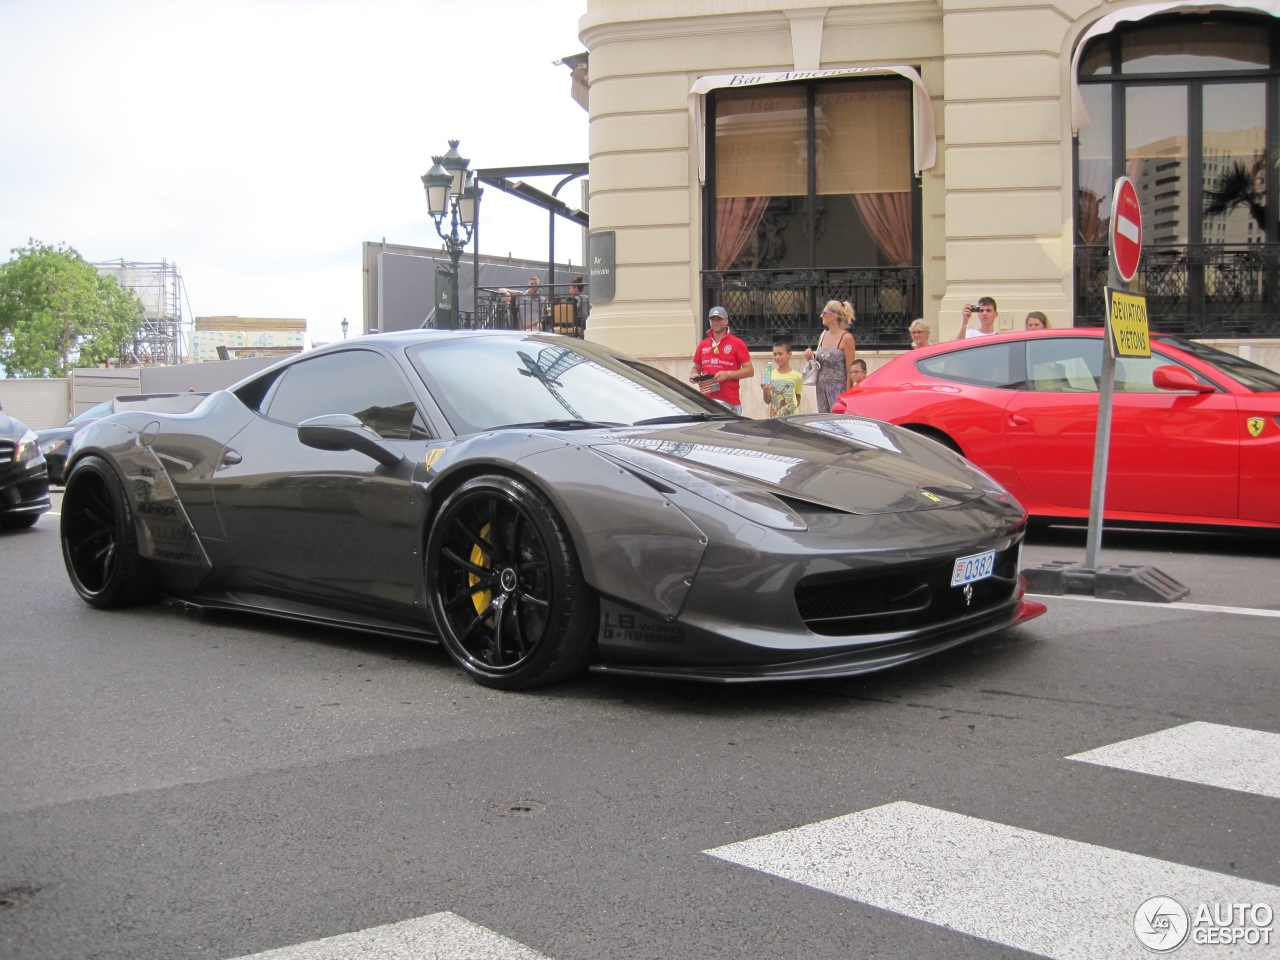 ferrari 458 italia liberty walk widebody 23 august 2015 autogespot. Black Bedroom Furniture Sets. Home Design Ideas